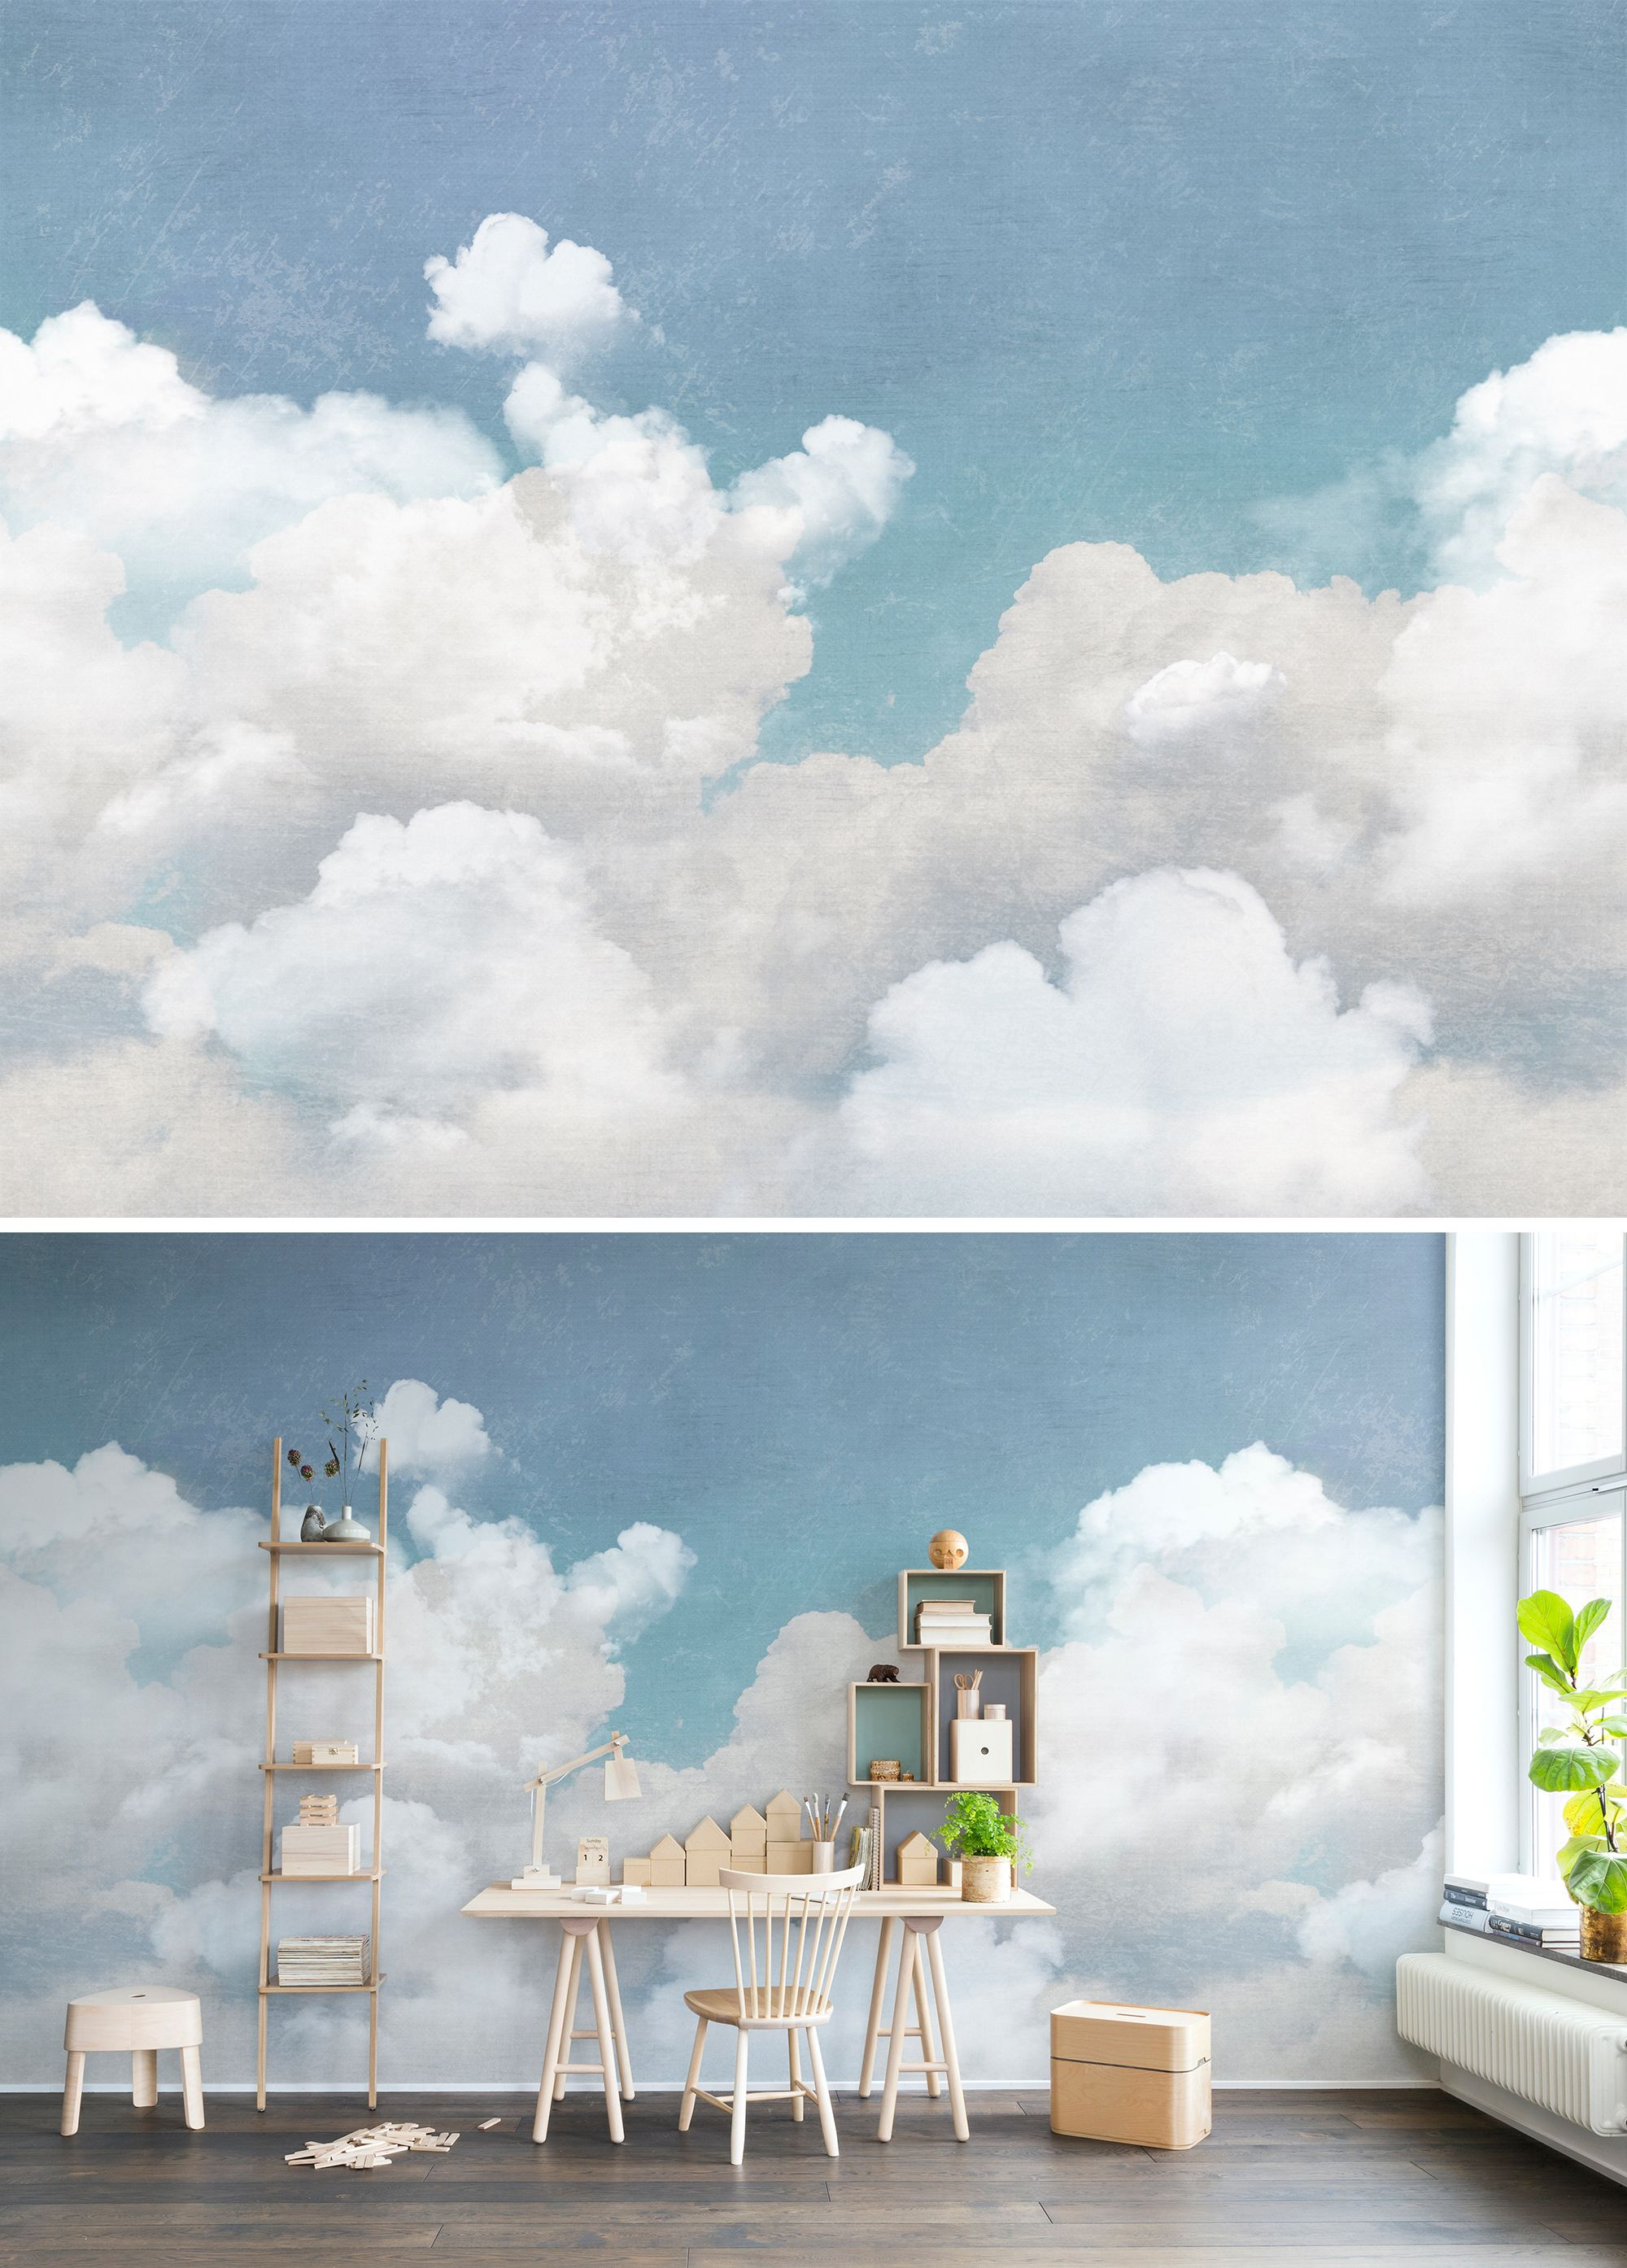 Wall Mural Wallpaper Blue Turquoise Dream Sky Clouds Fluffy Art Children Nursery Kids Retro Vintage